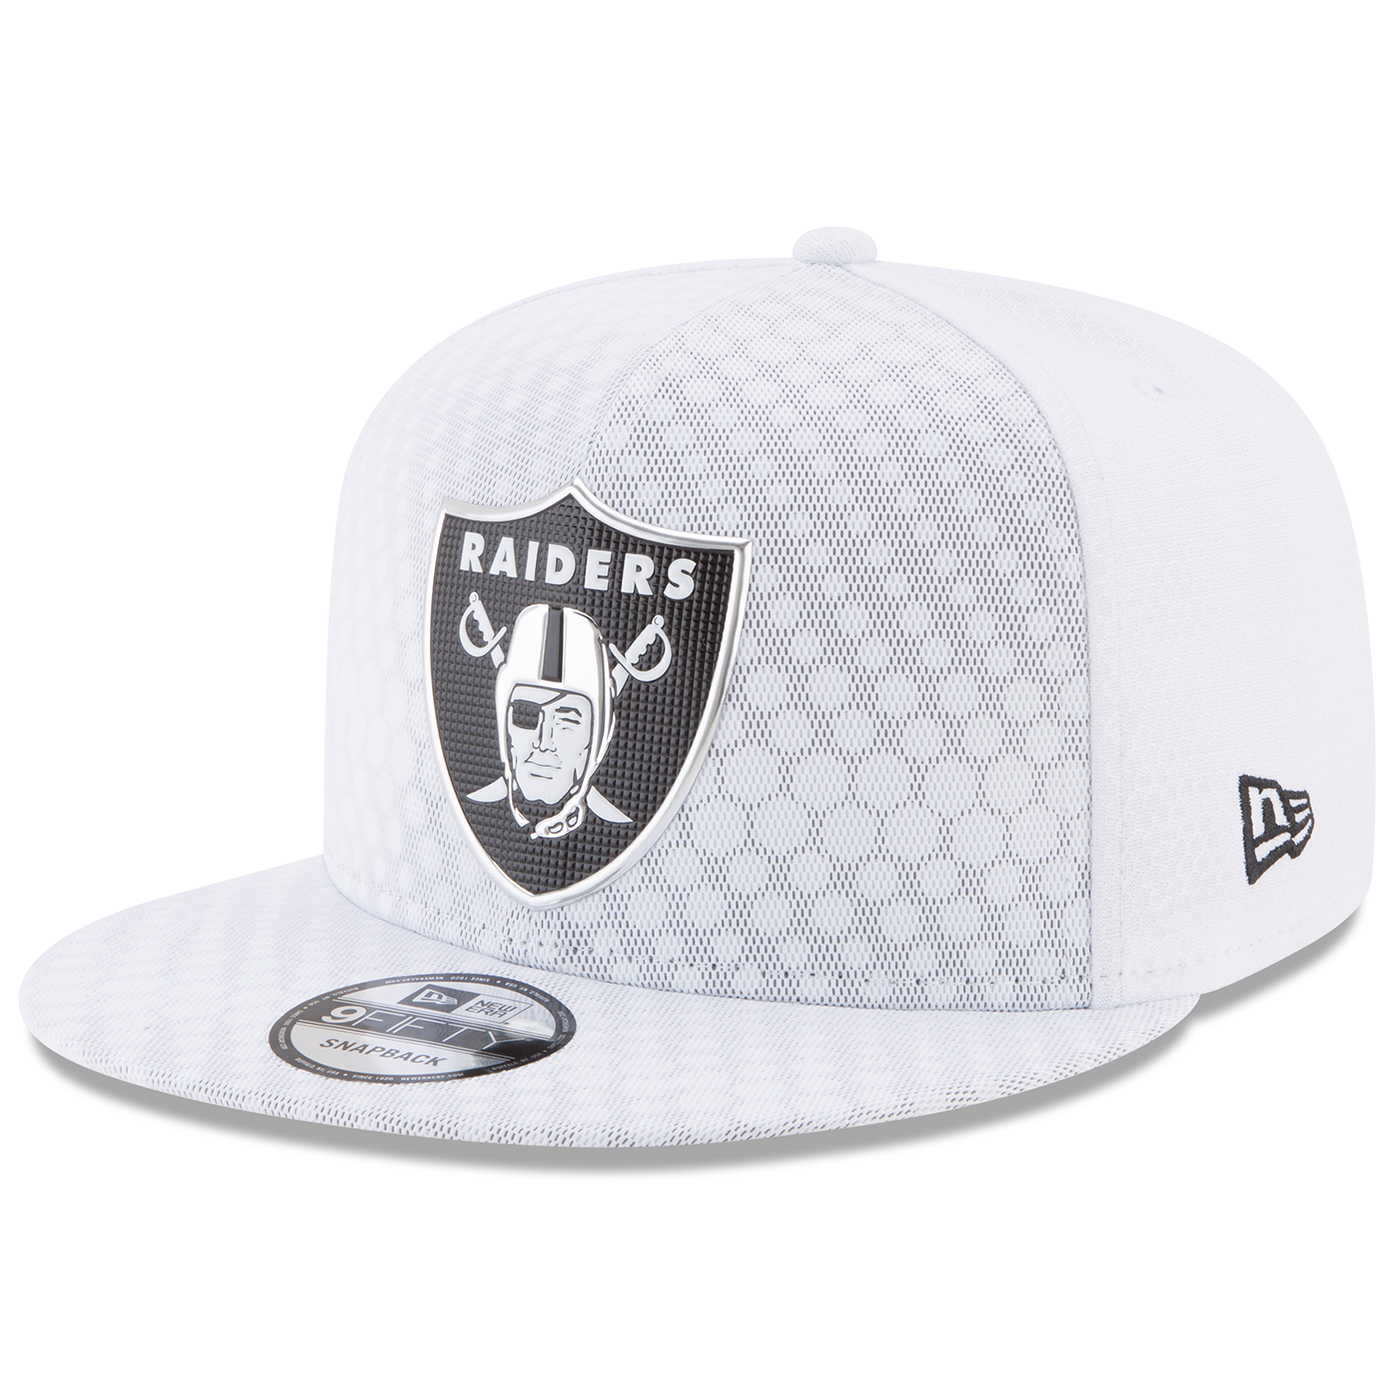 cheaper 61ac3 6b0ca ... get raiders new era official 2017 sideline color rush youth cap 311b5  f706d